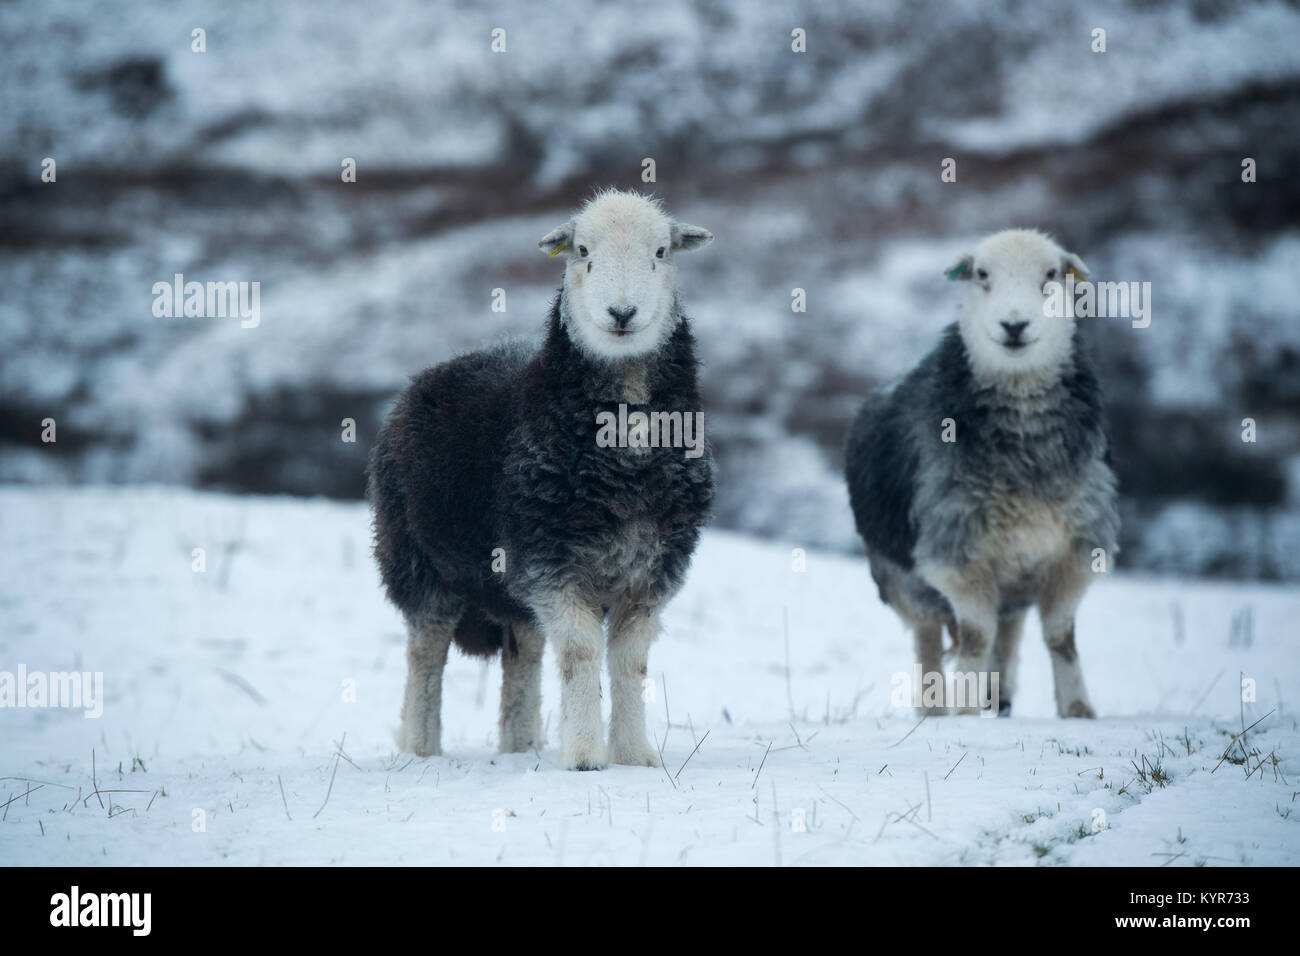 Herdwick sheep, traditional hill breed from Cumbria, in snowy weather, Cumbria, UK Stock Photo